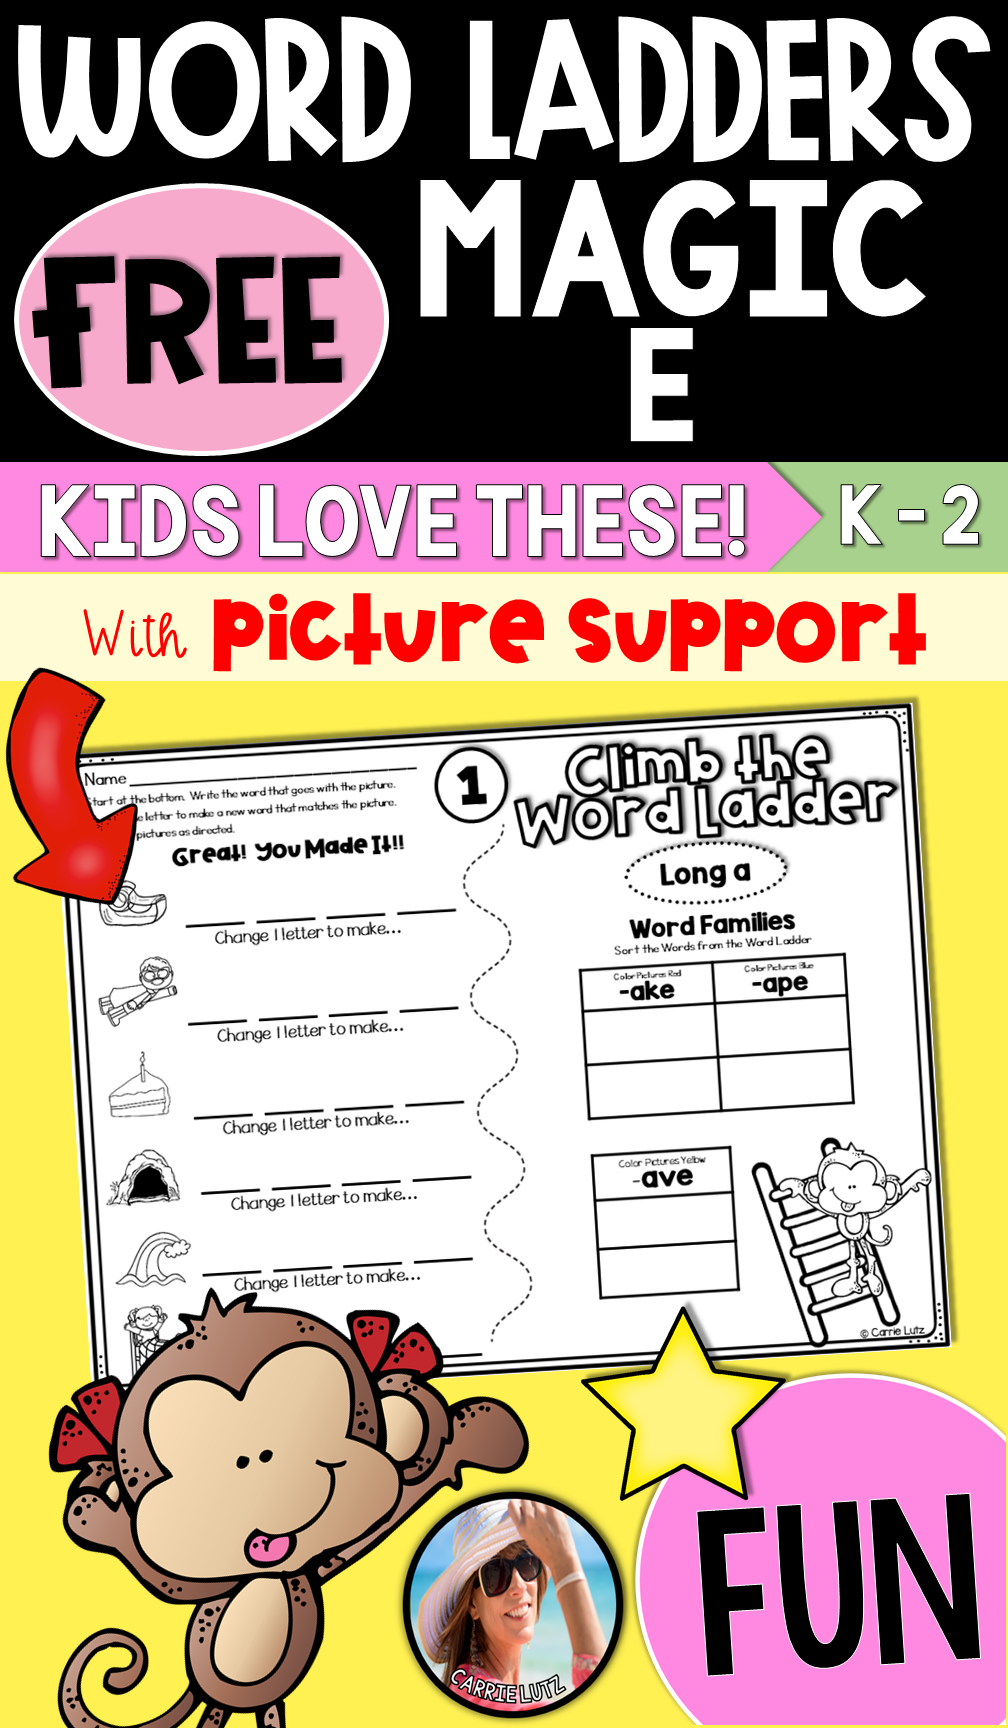 hight resolution of This Free Magic e Printable Worksheet / Activity makes learning FUN for  Kids in Kindergarten and First Grade. Ph…   Word ladders